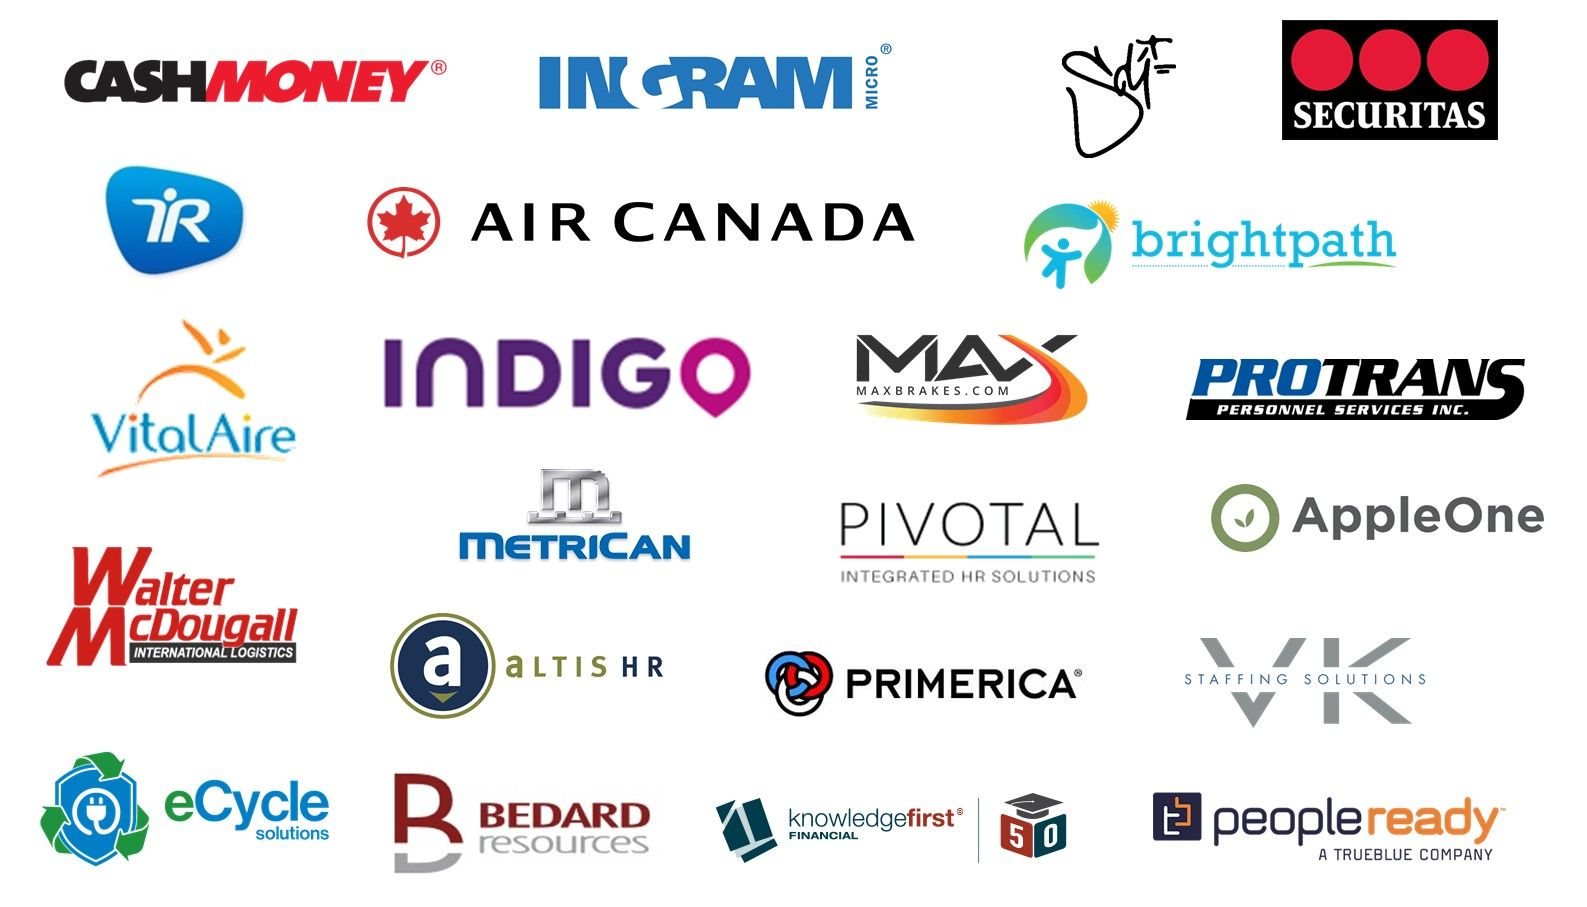 The List of Exhibitors for Mississauga Job Fair on May